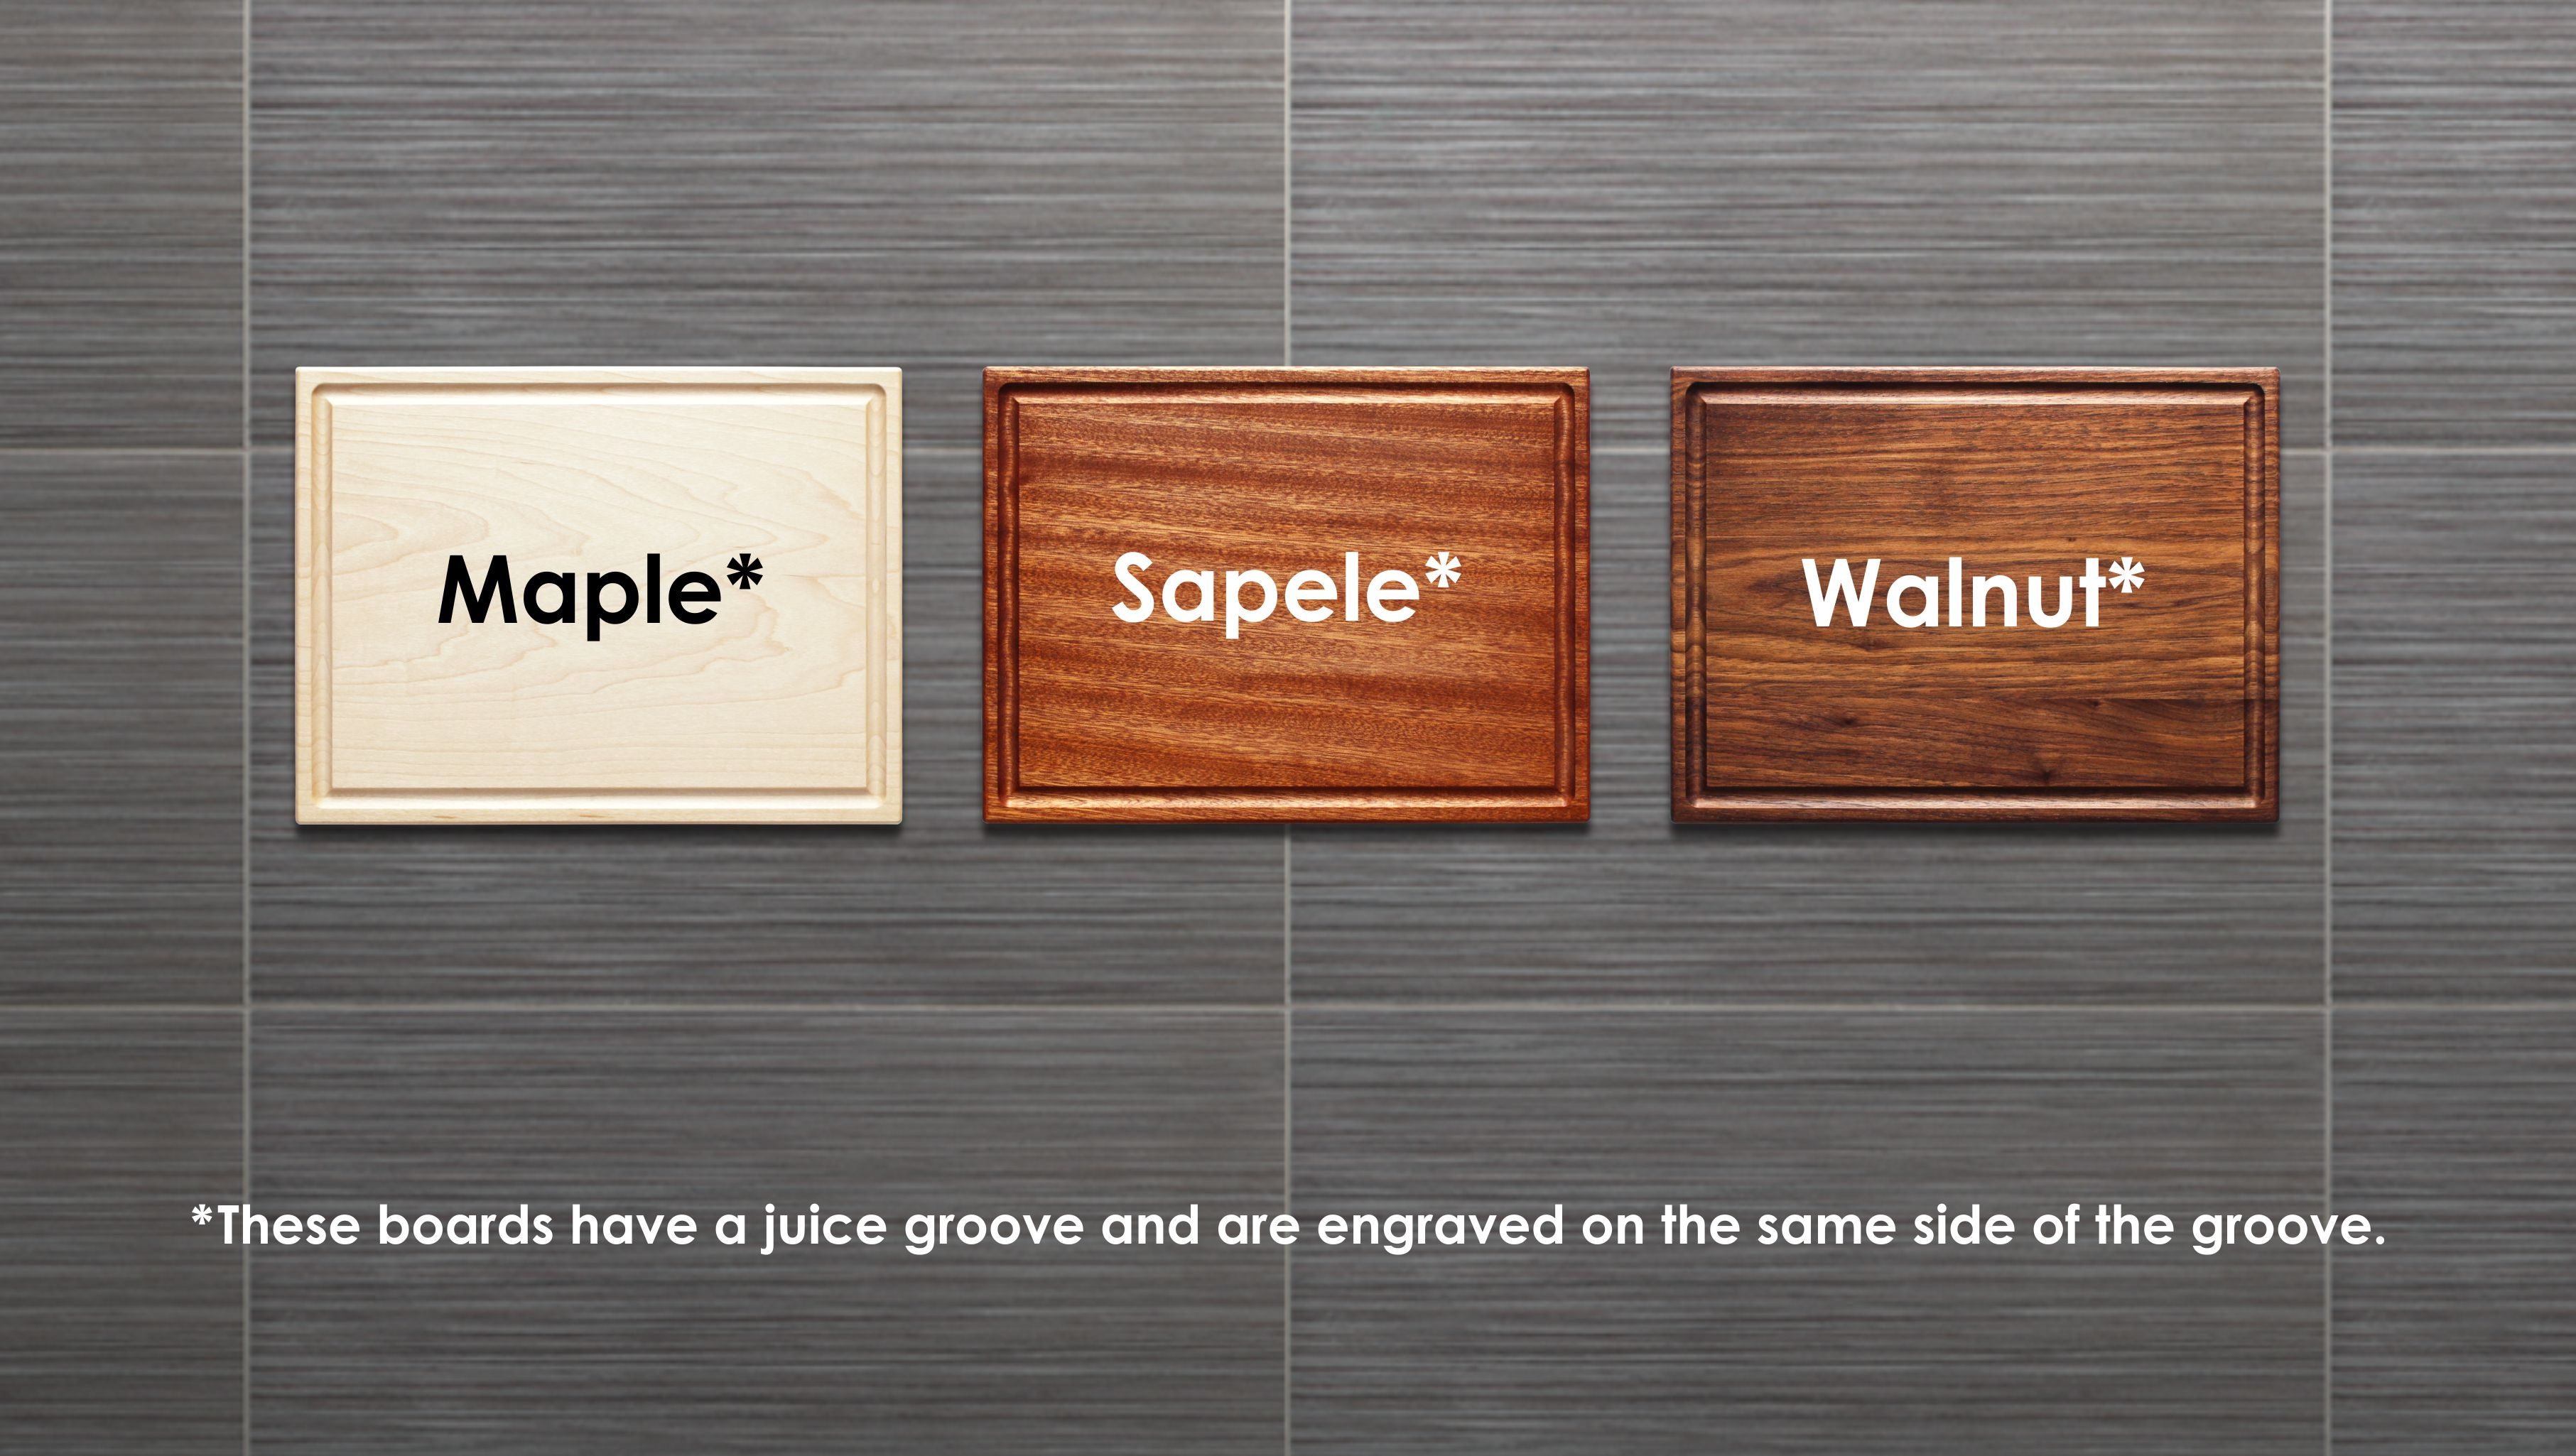 Juice Groove Chef Gift WOOD EDGE GRAIN Cutting Board Wood Carving Board with Groove Charcuterie Board Juice Trough Wedding Gift